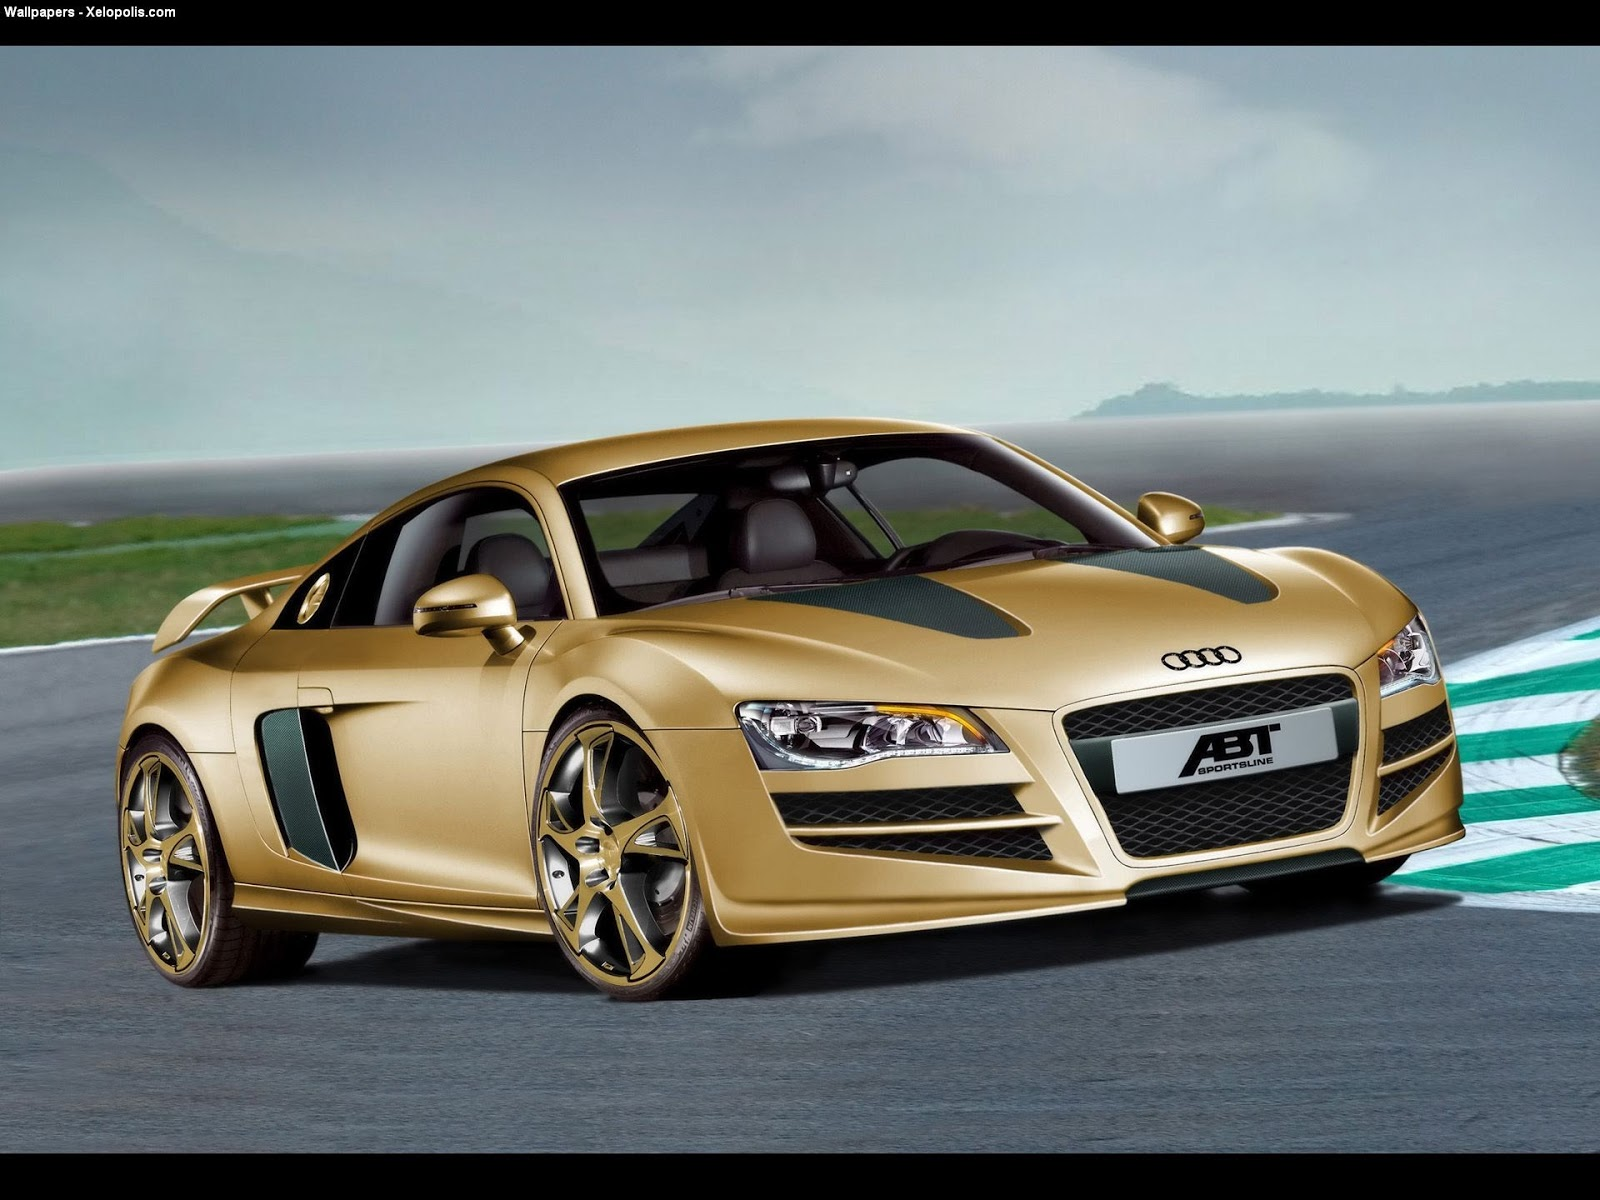 Our Auto Cars Blog Adding Upcoming Audi R8 2015 Model With HD Resolution WALLPAPER Pictures Images Etc Photos